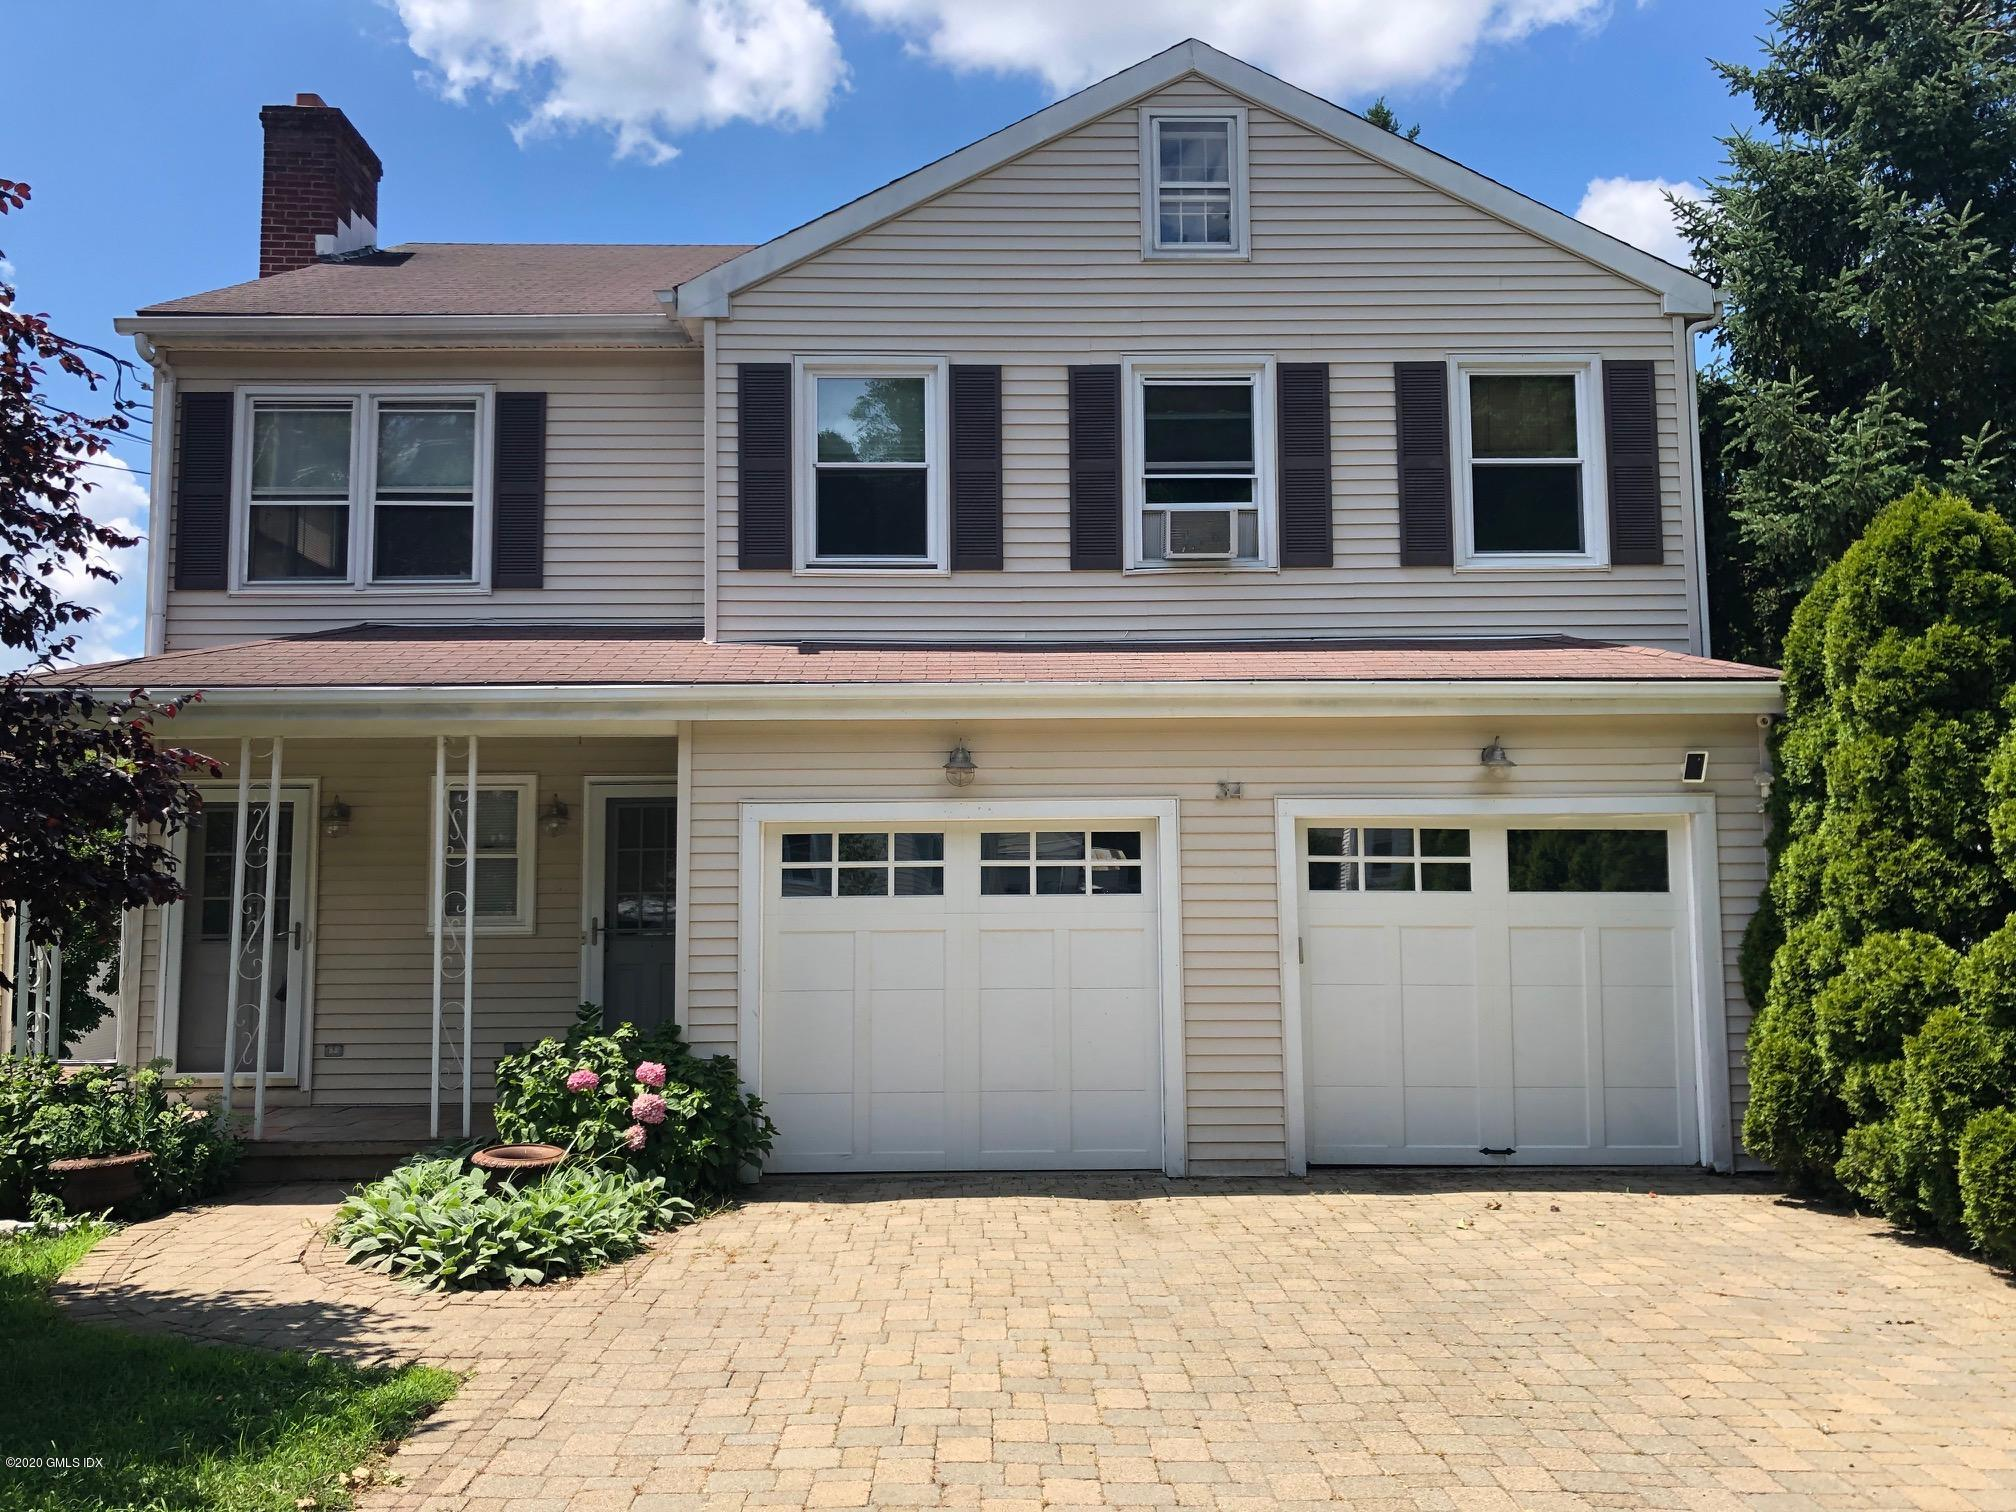 34 Pemberwick Road, Greenwich, Connecticut 06831, 2 Bedrooms Bedrooms, ,2 BathroomsBathrooms,Multi-family - 2 units,For Rent,Pemberwick,110707